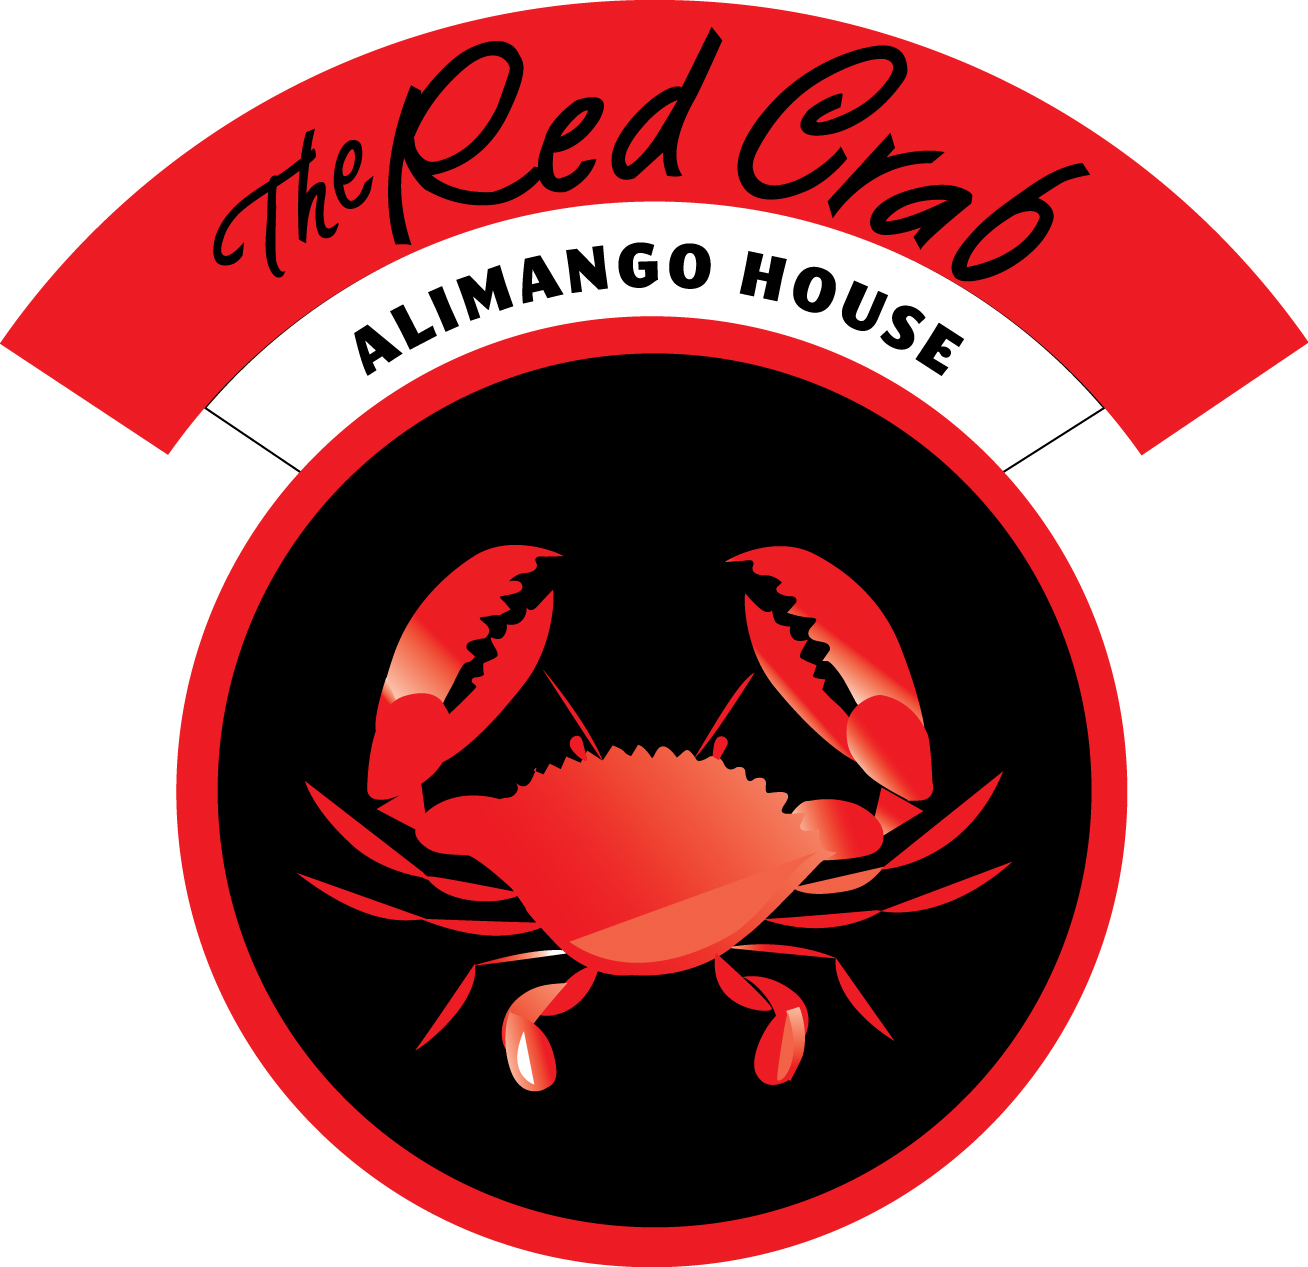 THE RED CRAB ALIMANGO HOUSE